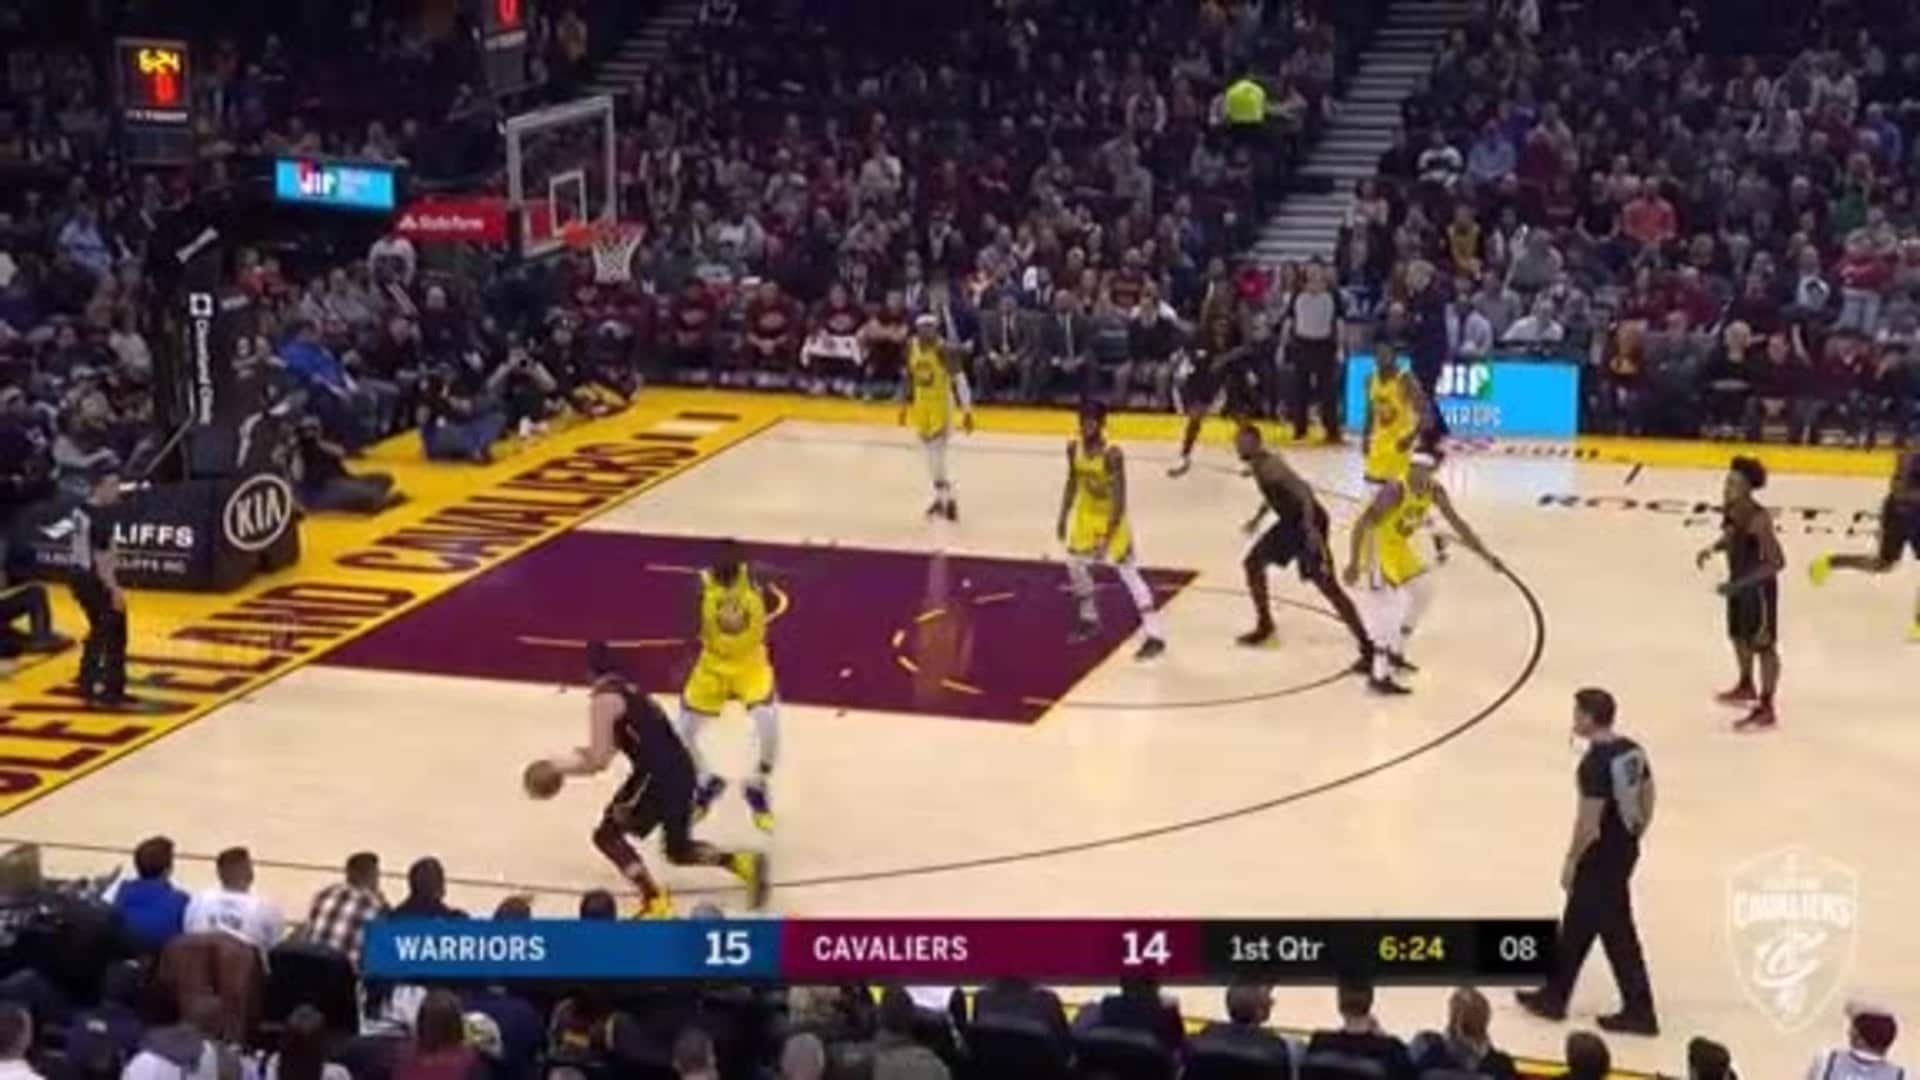 Cavs Great Ball Movement Leads to KPJ Three Ball